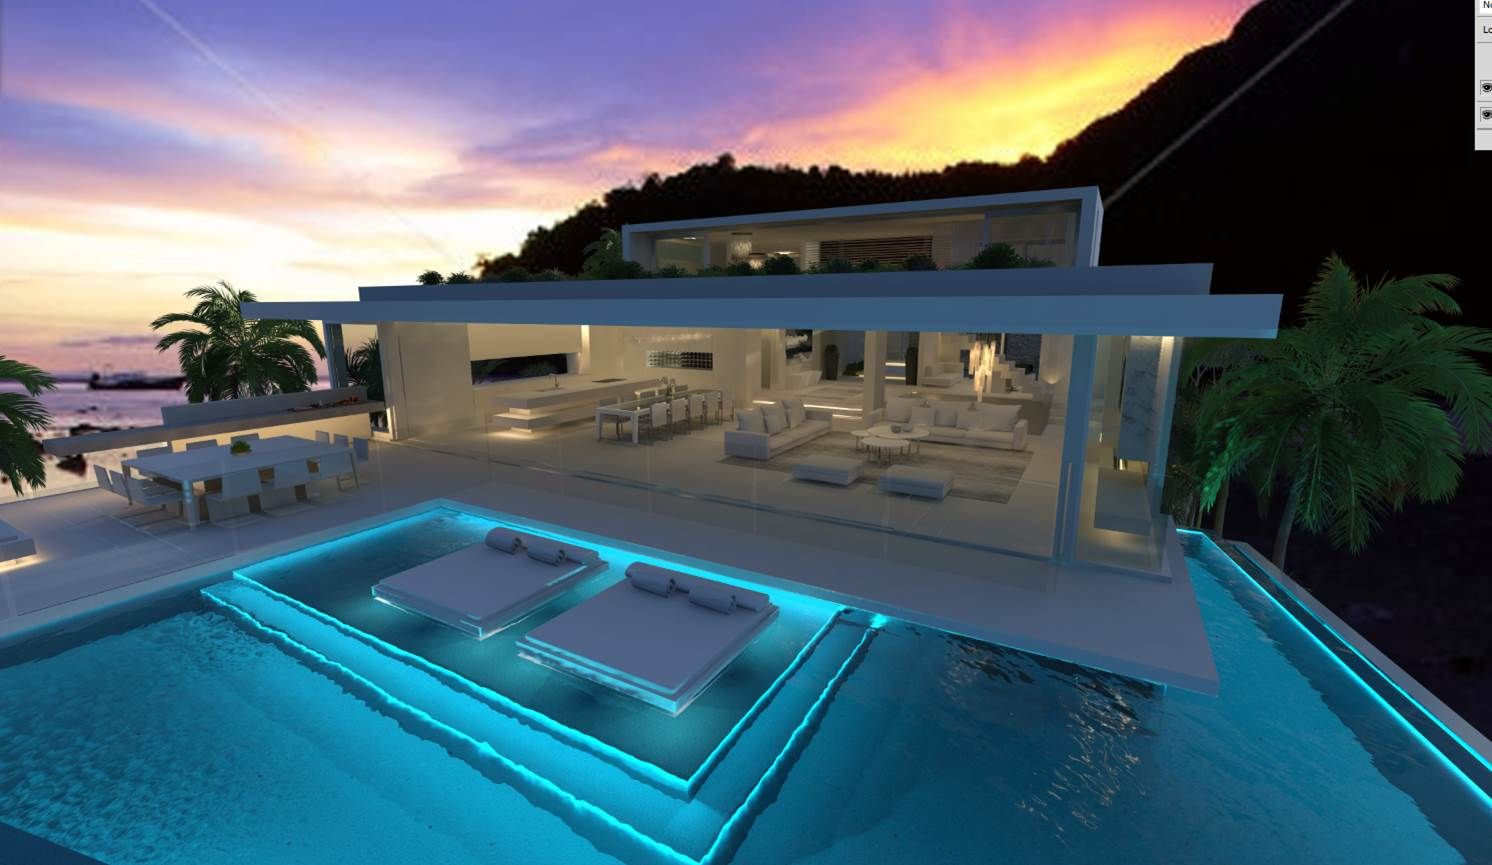 New chris clout design modern beach house in sunshine beach interiors lighting pool